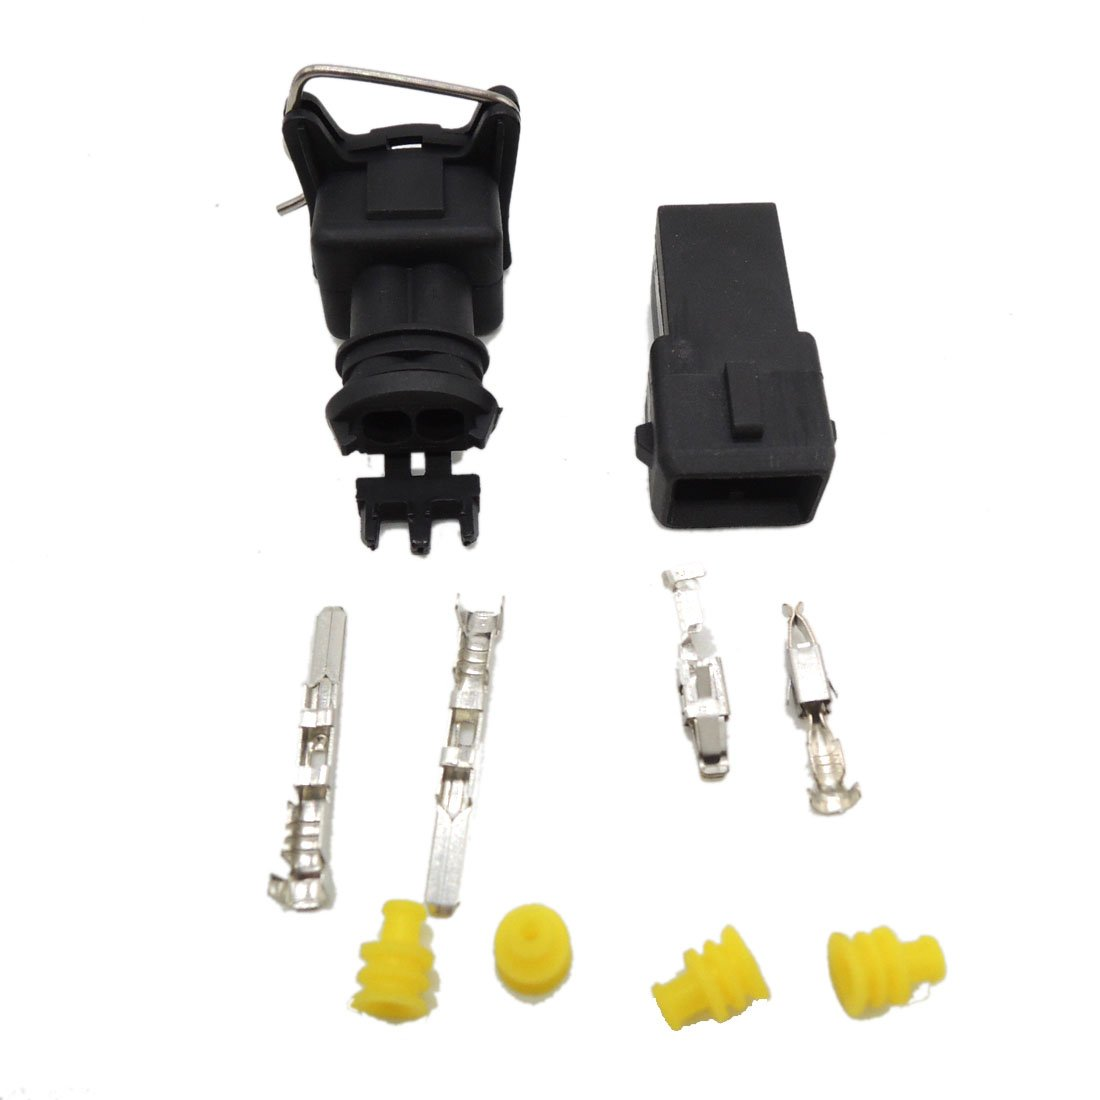 10 set EV1 Fuel Injector Plug Car Waterproof 2 Pin way Electrical Wire Connector Plug automobile Connectors Ogry